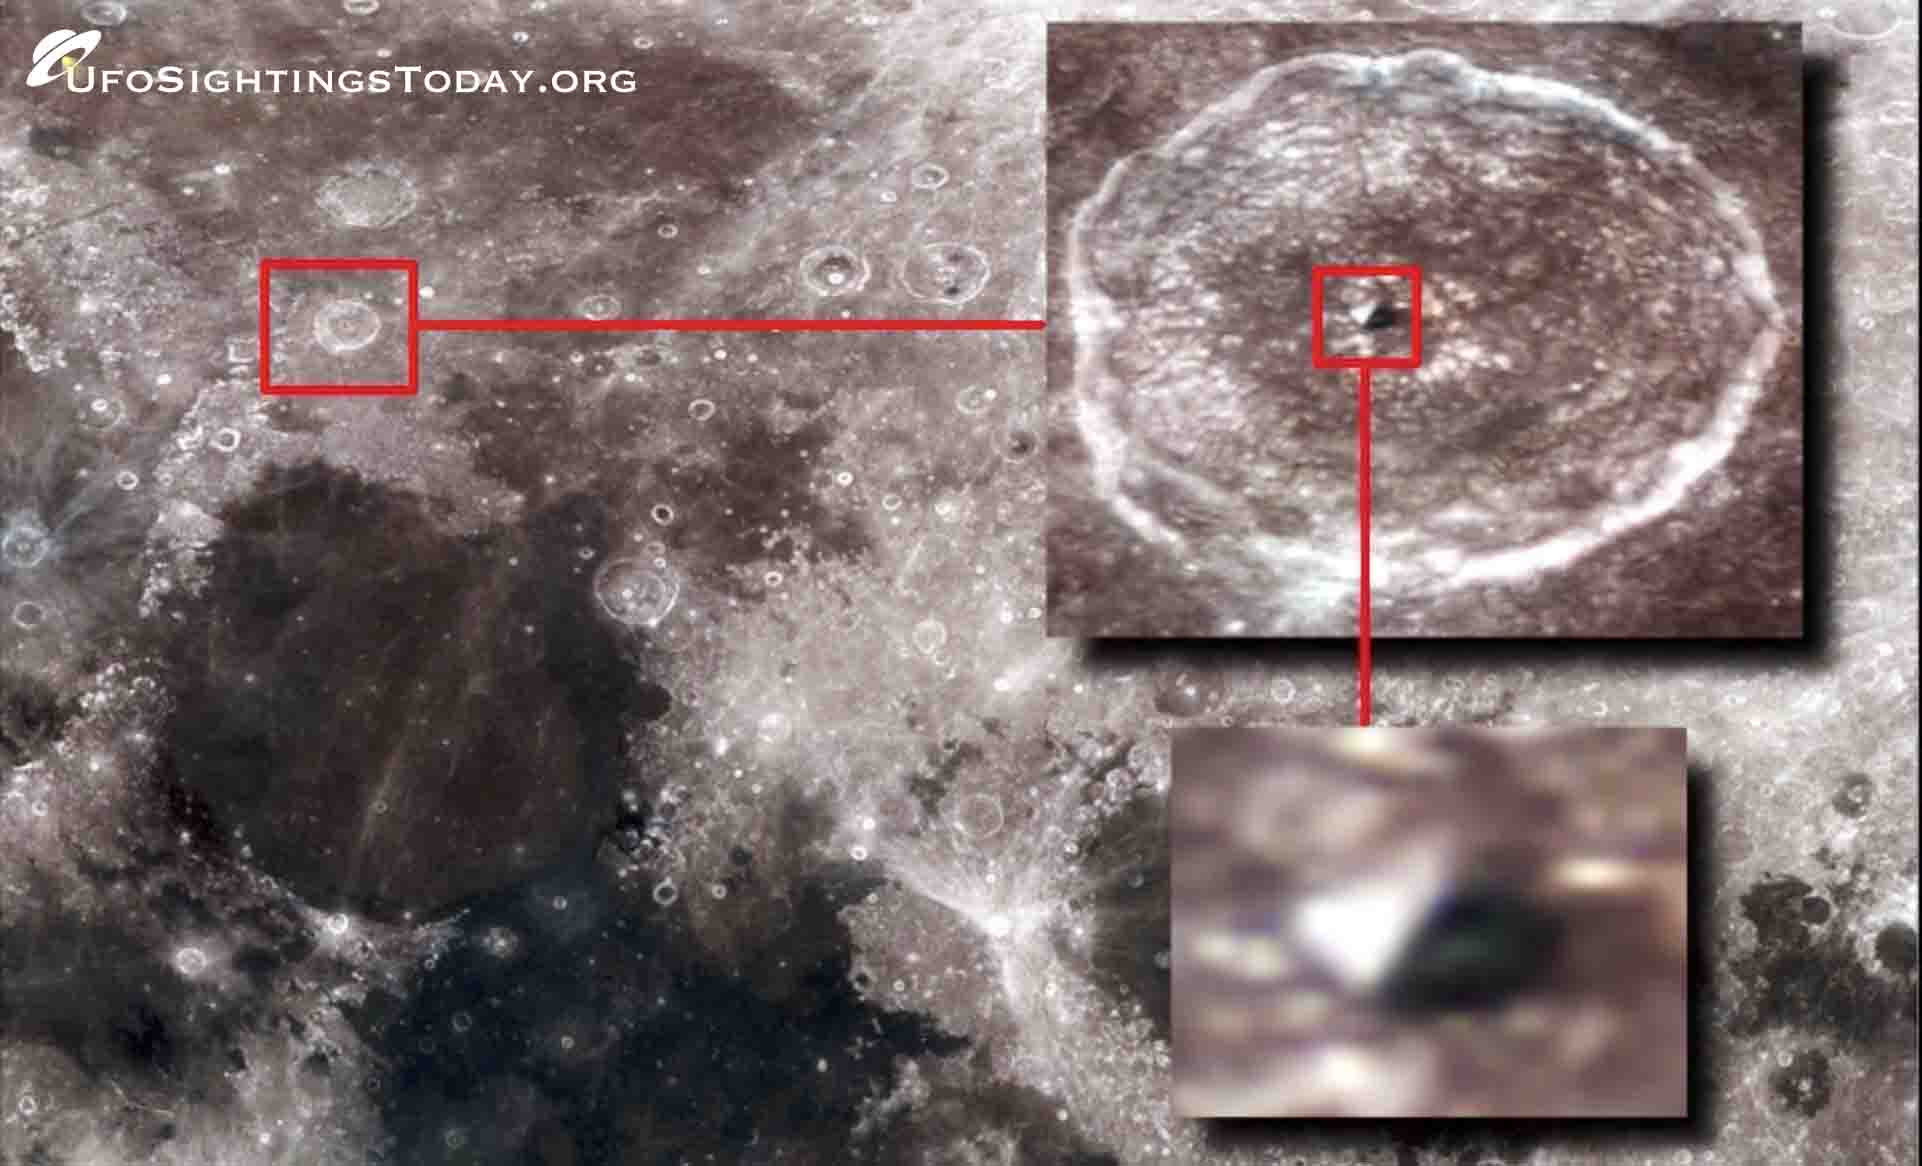 ancient pyramid has benn found on the moon